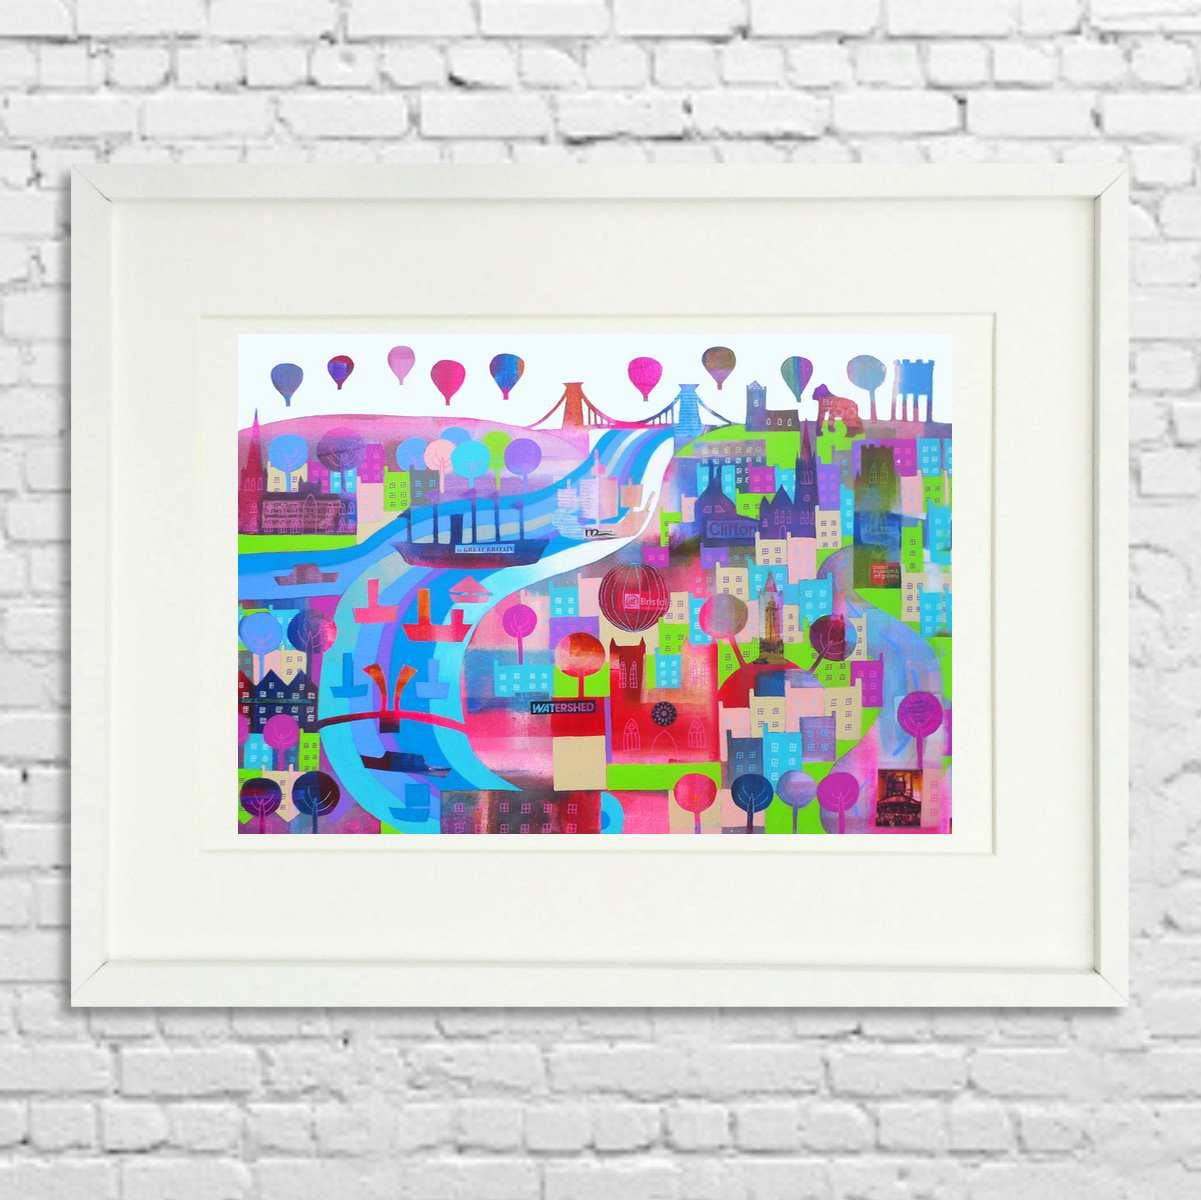 Shipshape and Bristol Fashion - Giclée Print by Jenny Urquhart | The Bristol Shop